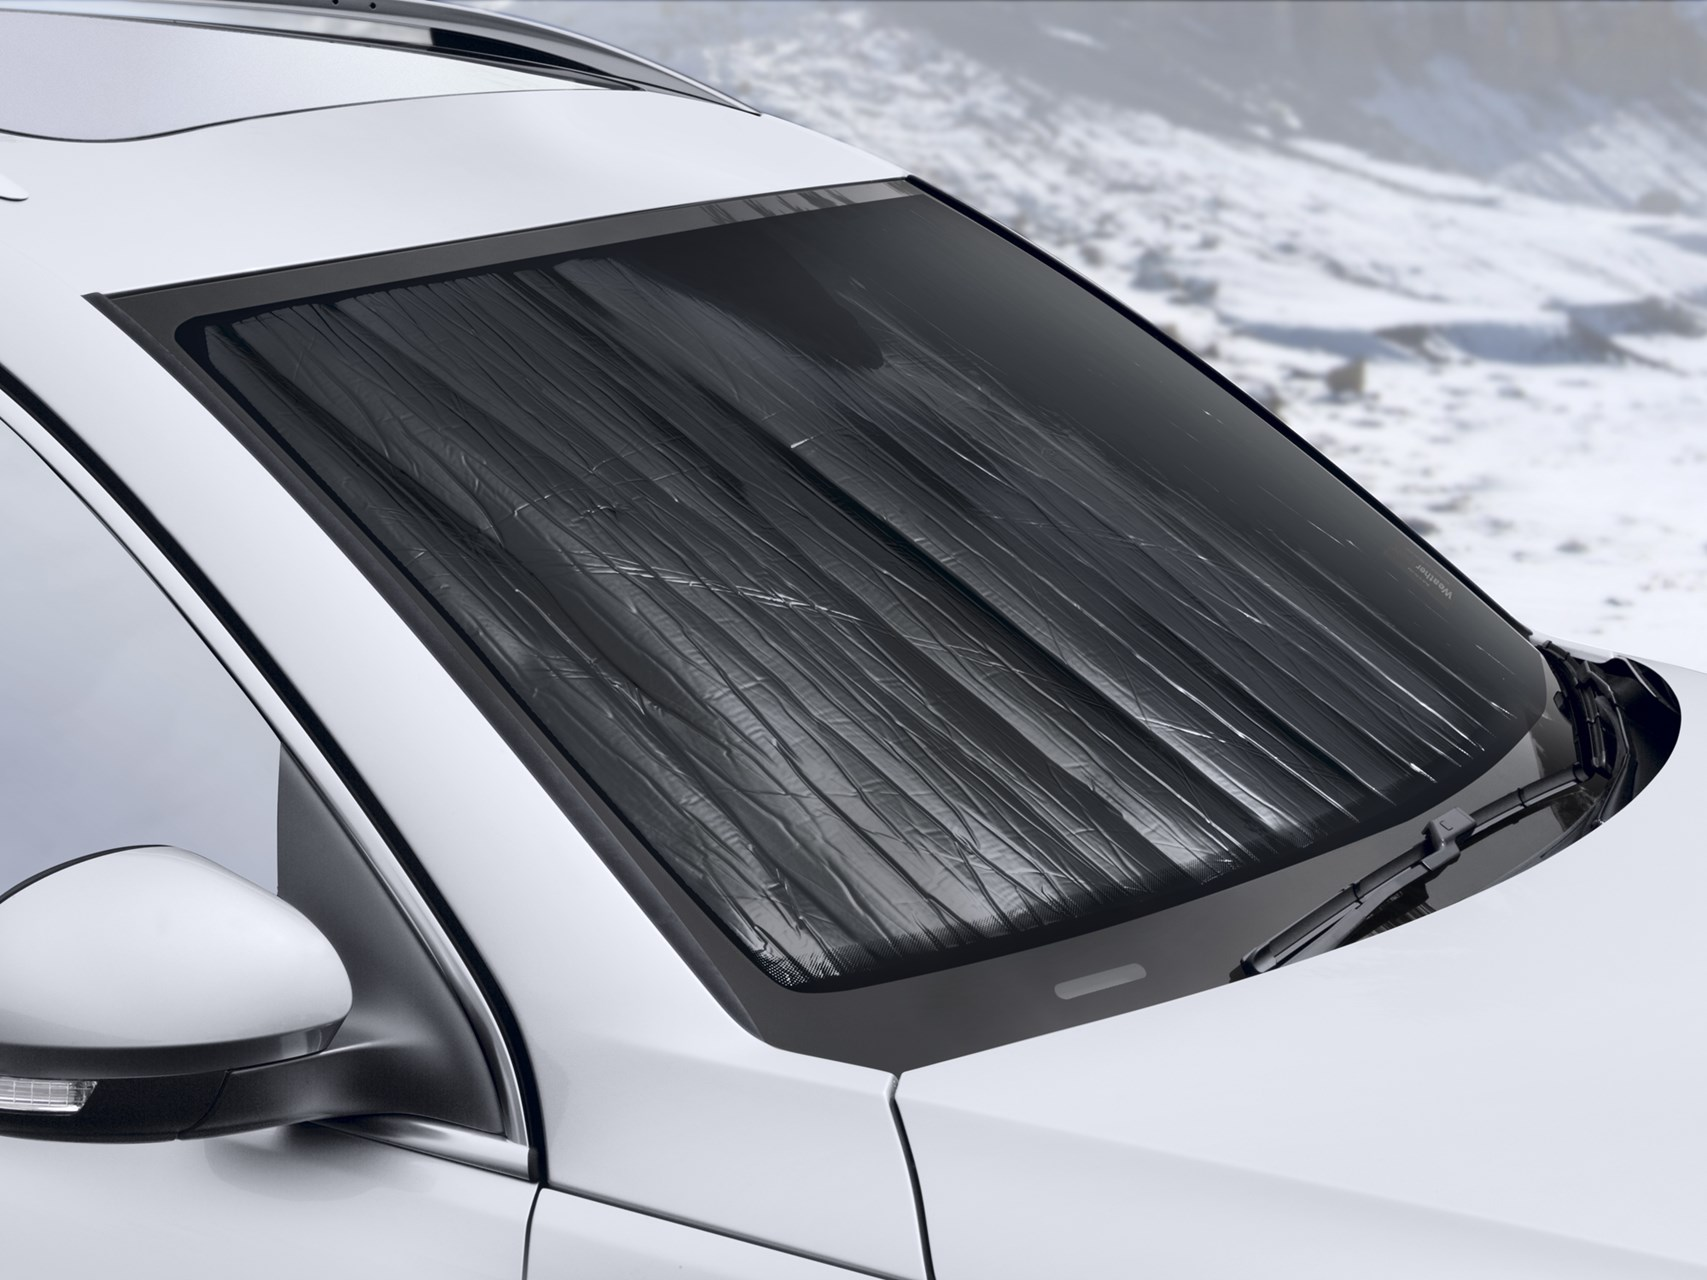 RealtimeCampaign.com Explains the Benefits of Custom Car Shades